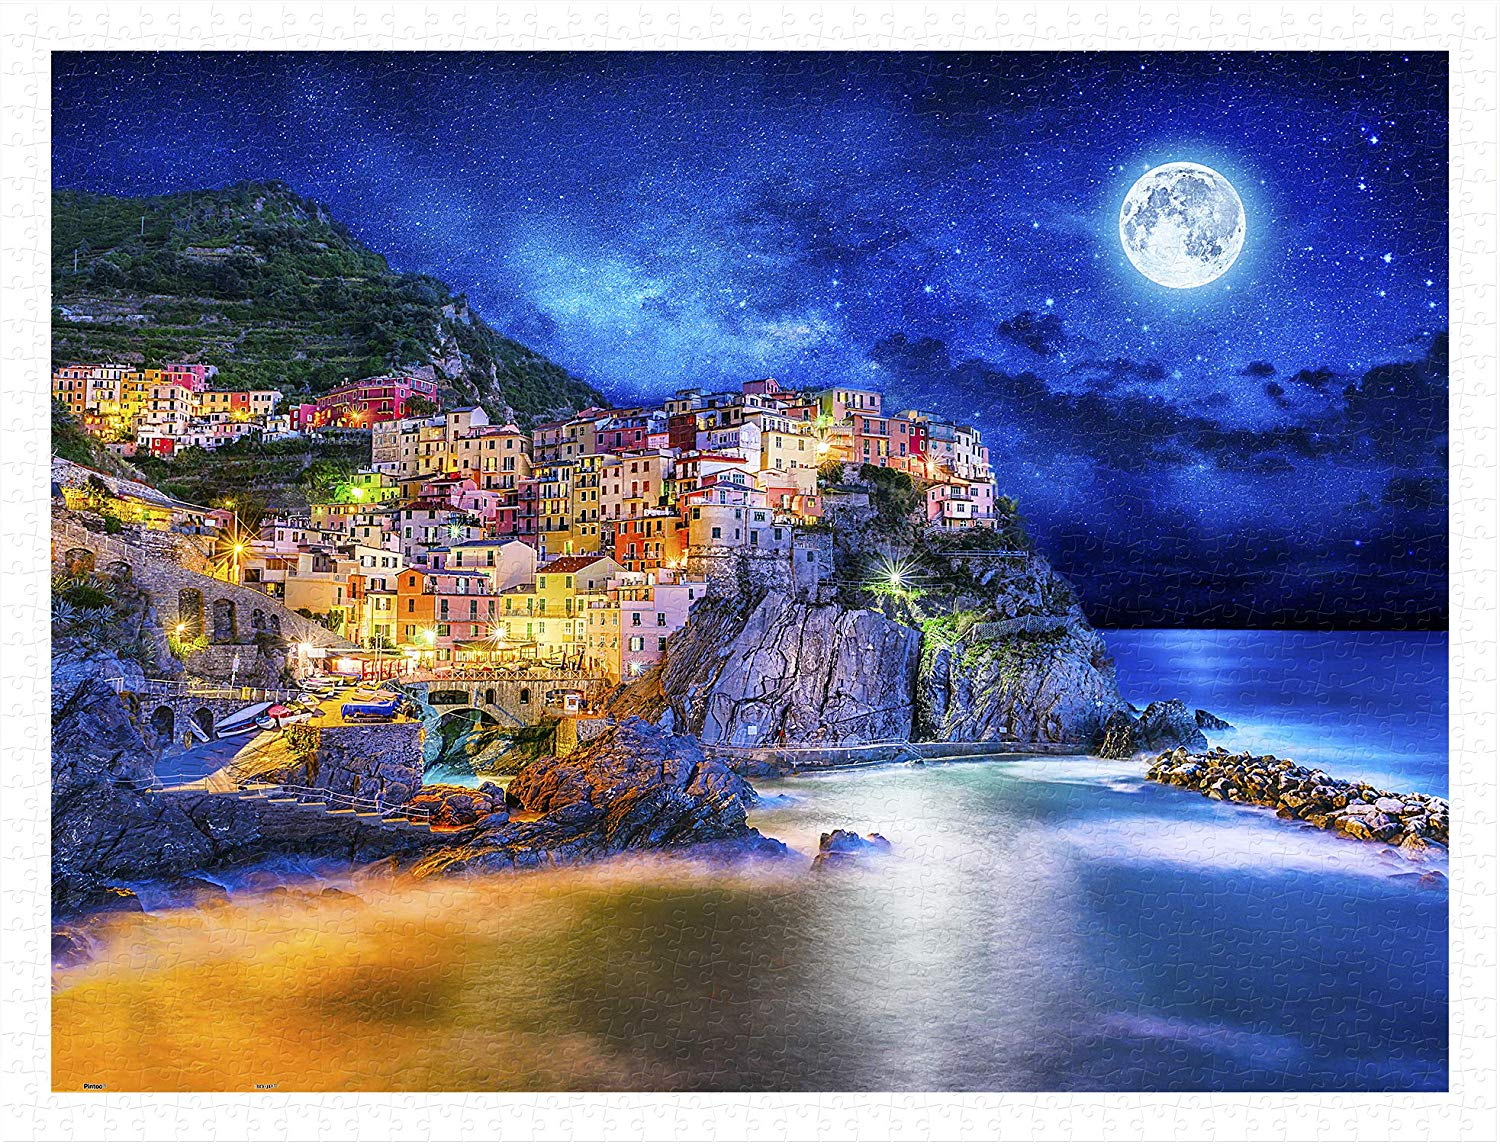 pintoo-puzzle-aus-kunststoff-starry-night-of-cinque-terre-italy-1200-teile-puzzle-pintoo-h2056